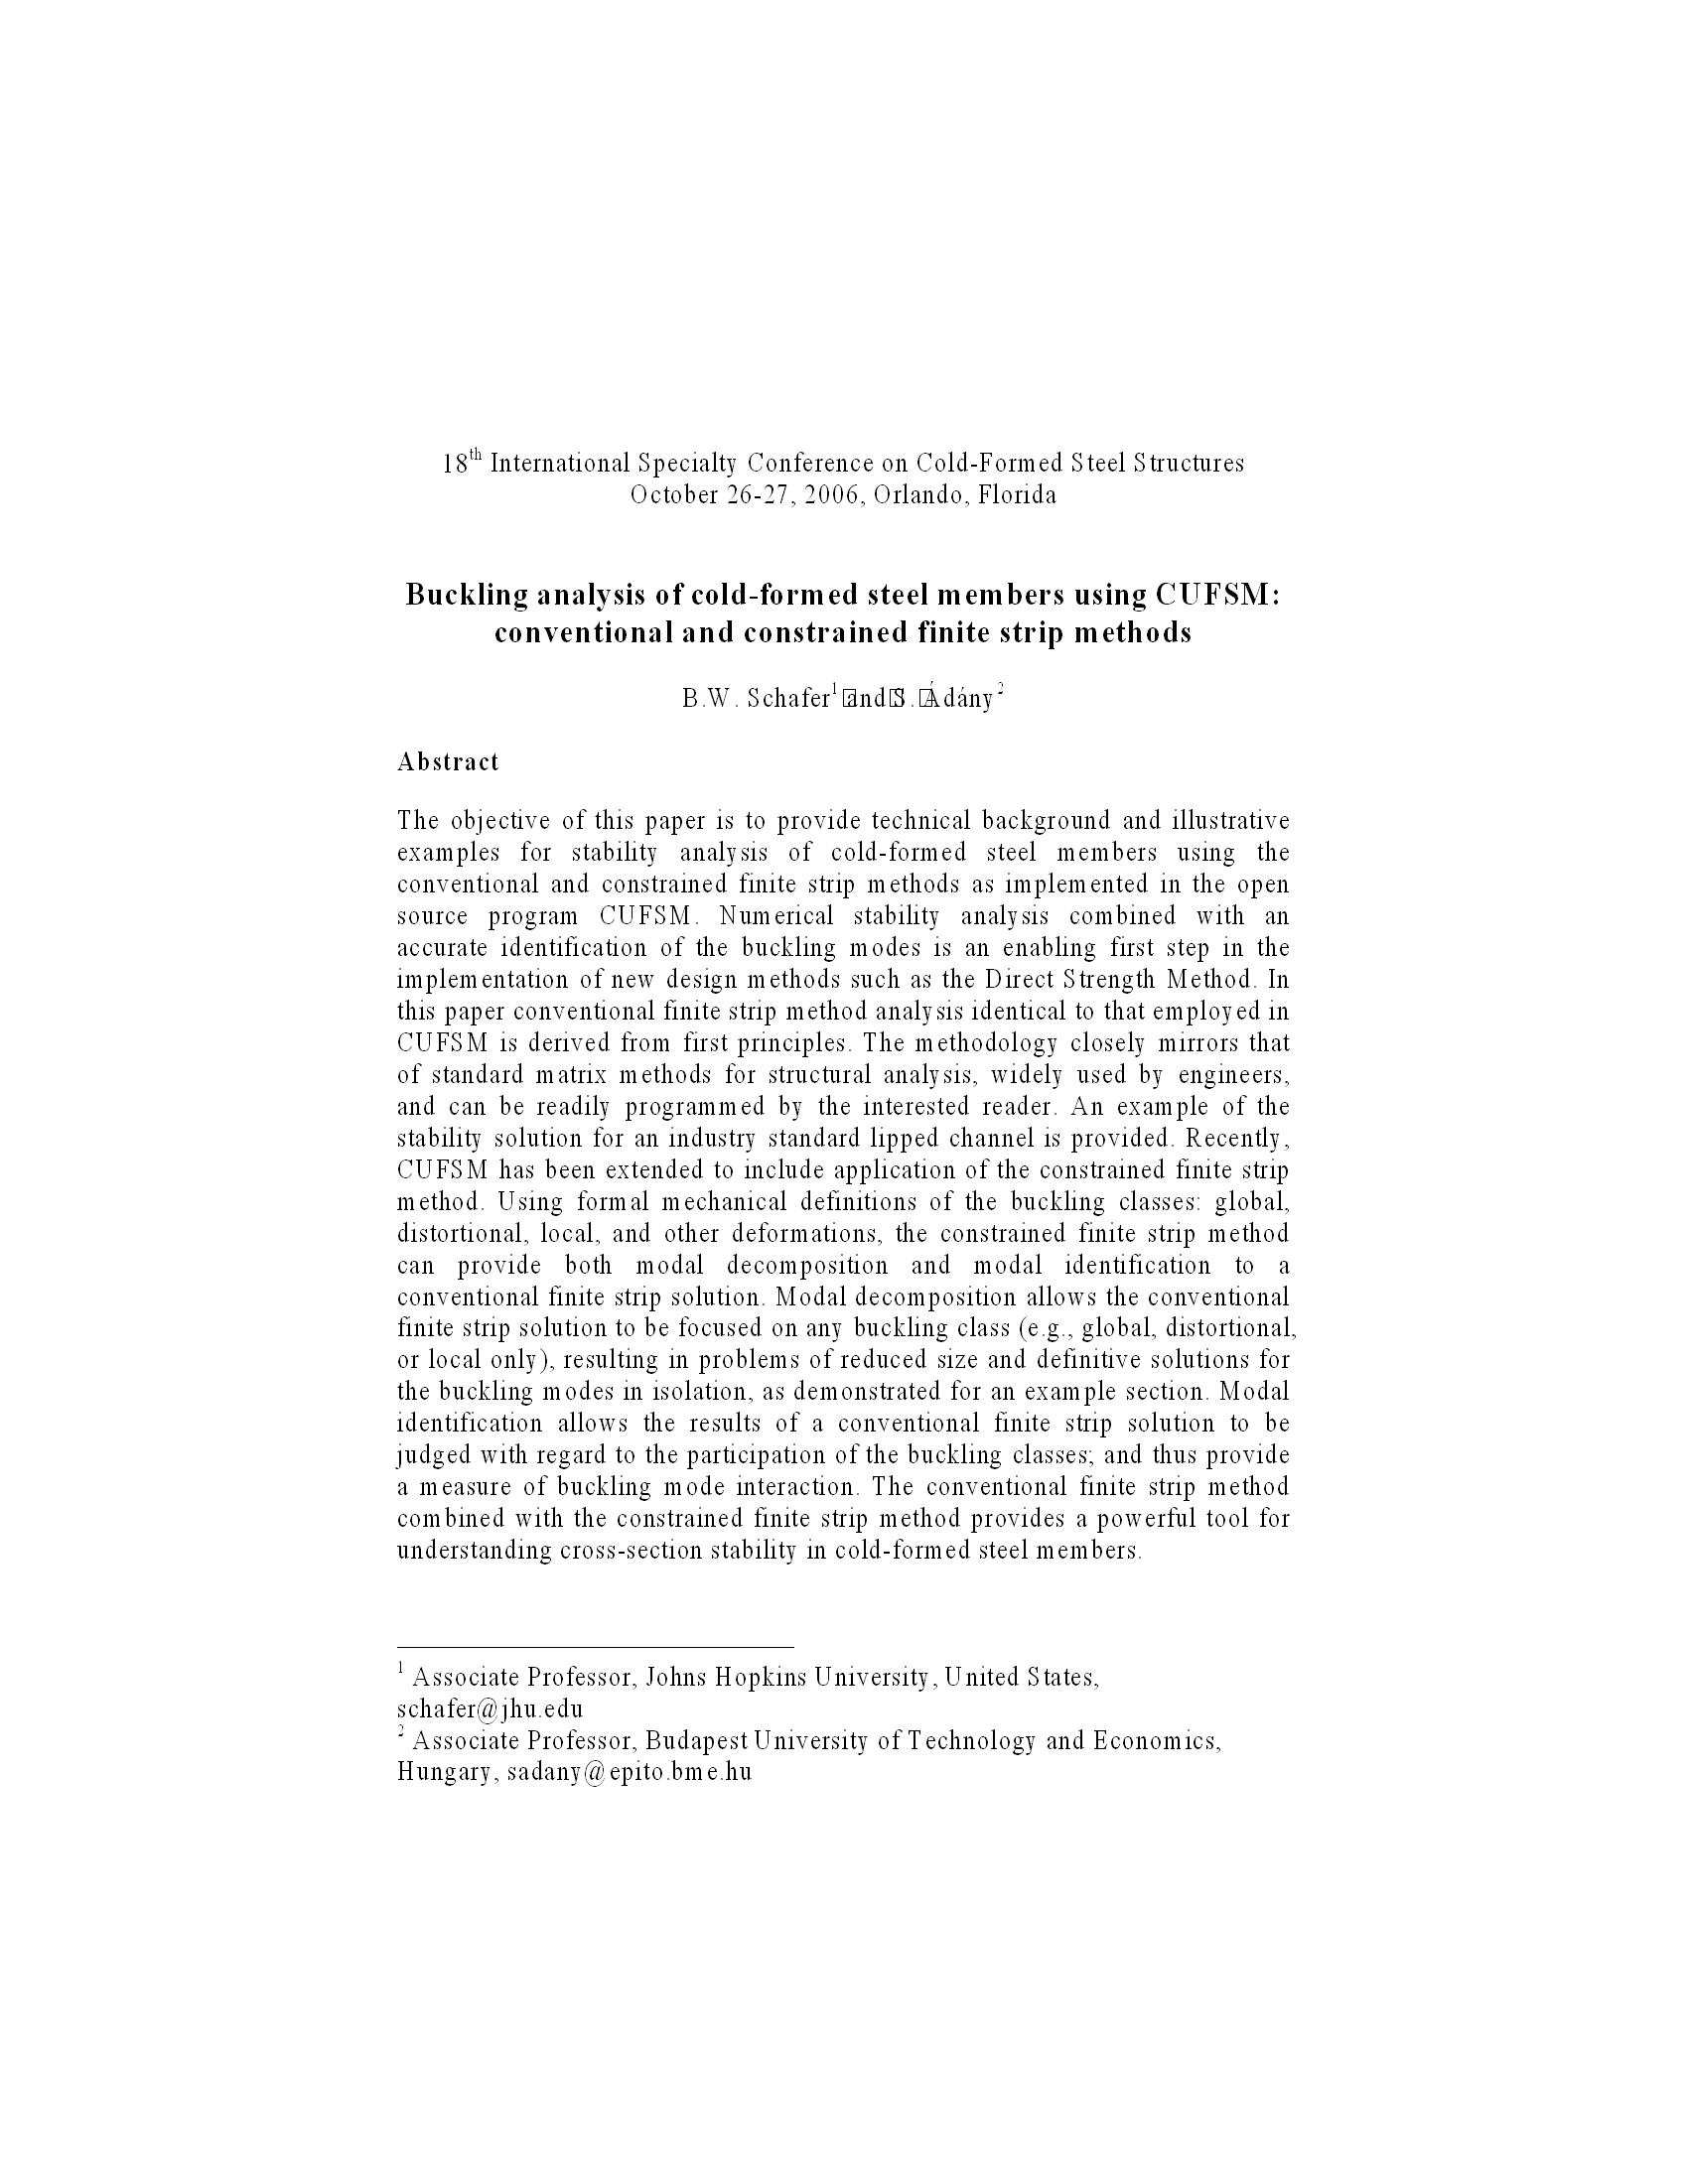 Buckling analysis of cold-formed steel members using CUFSM: conventional and constrained finite strip methods 16